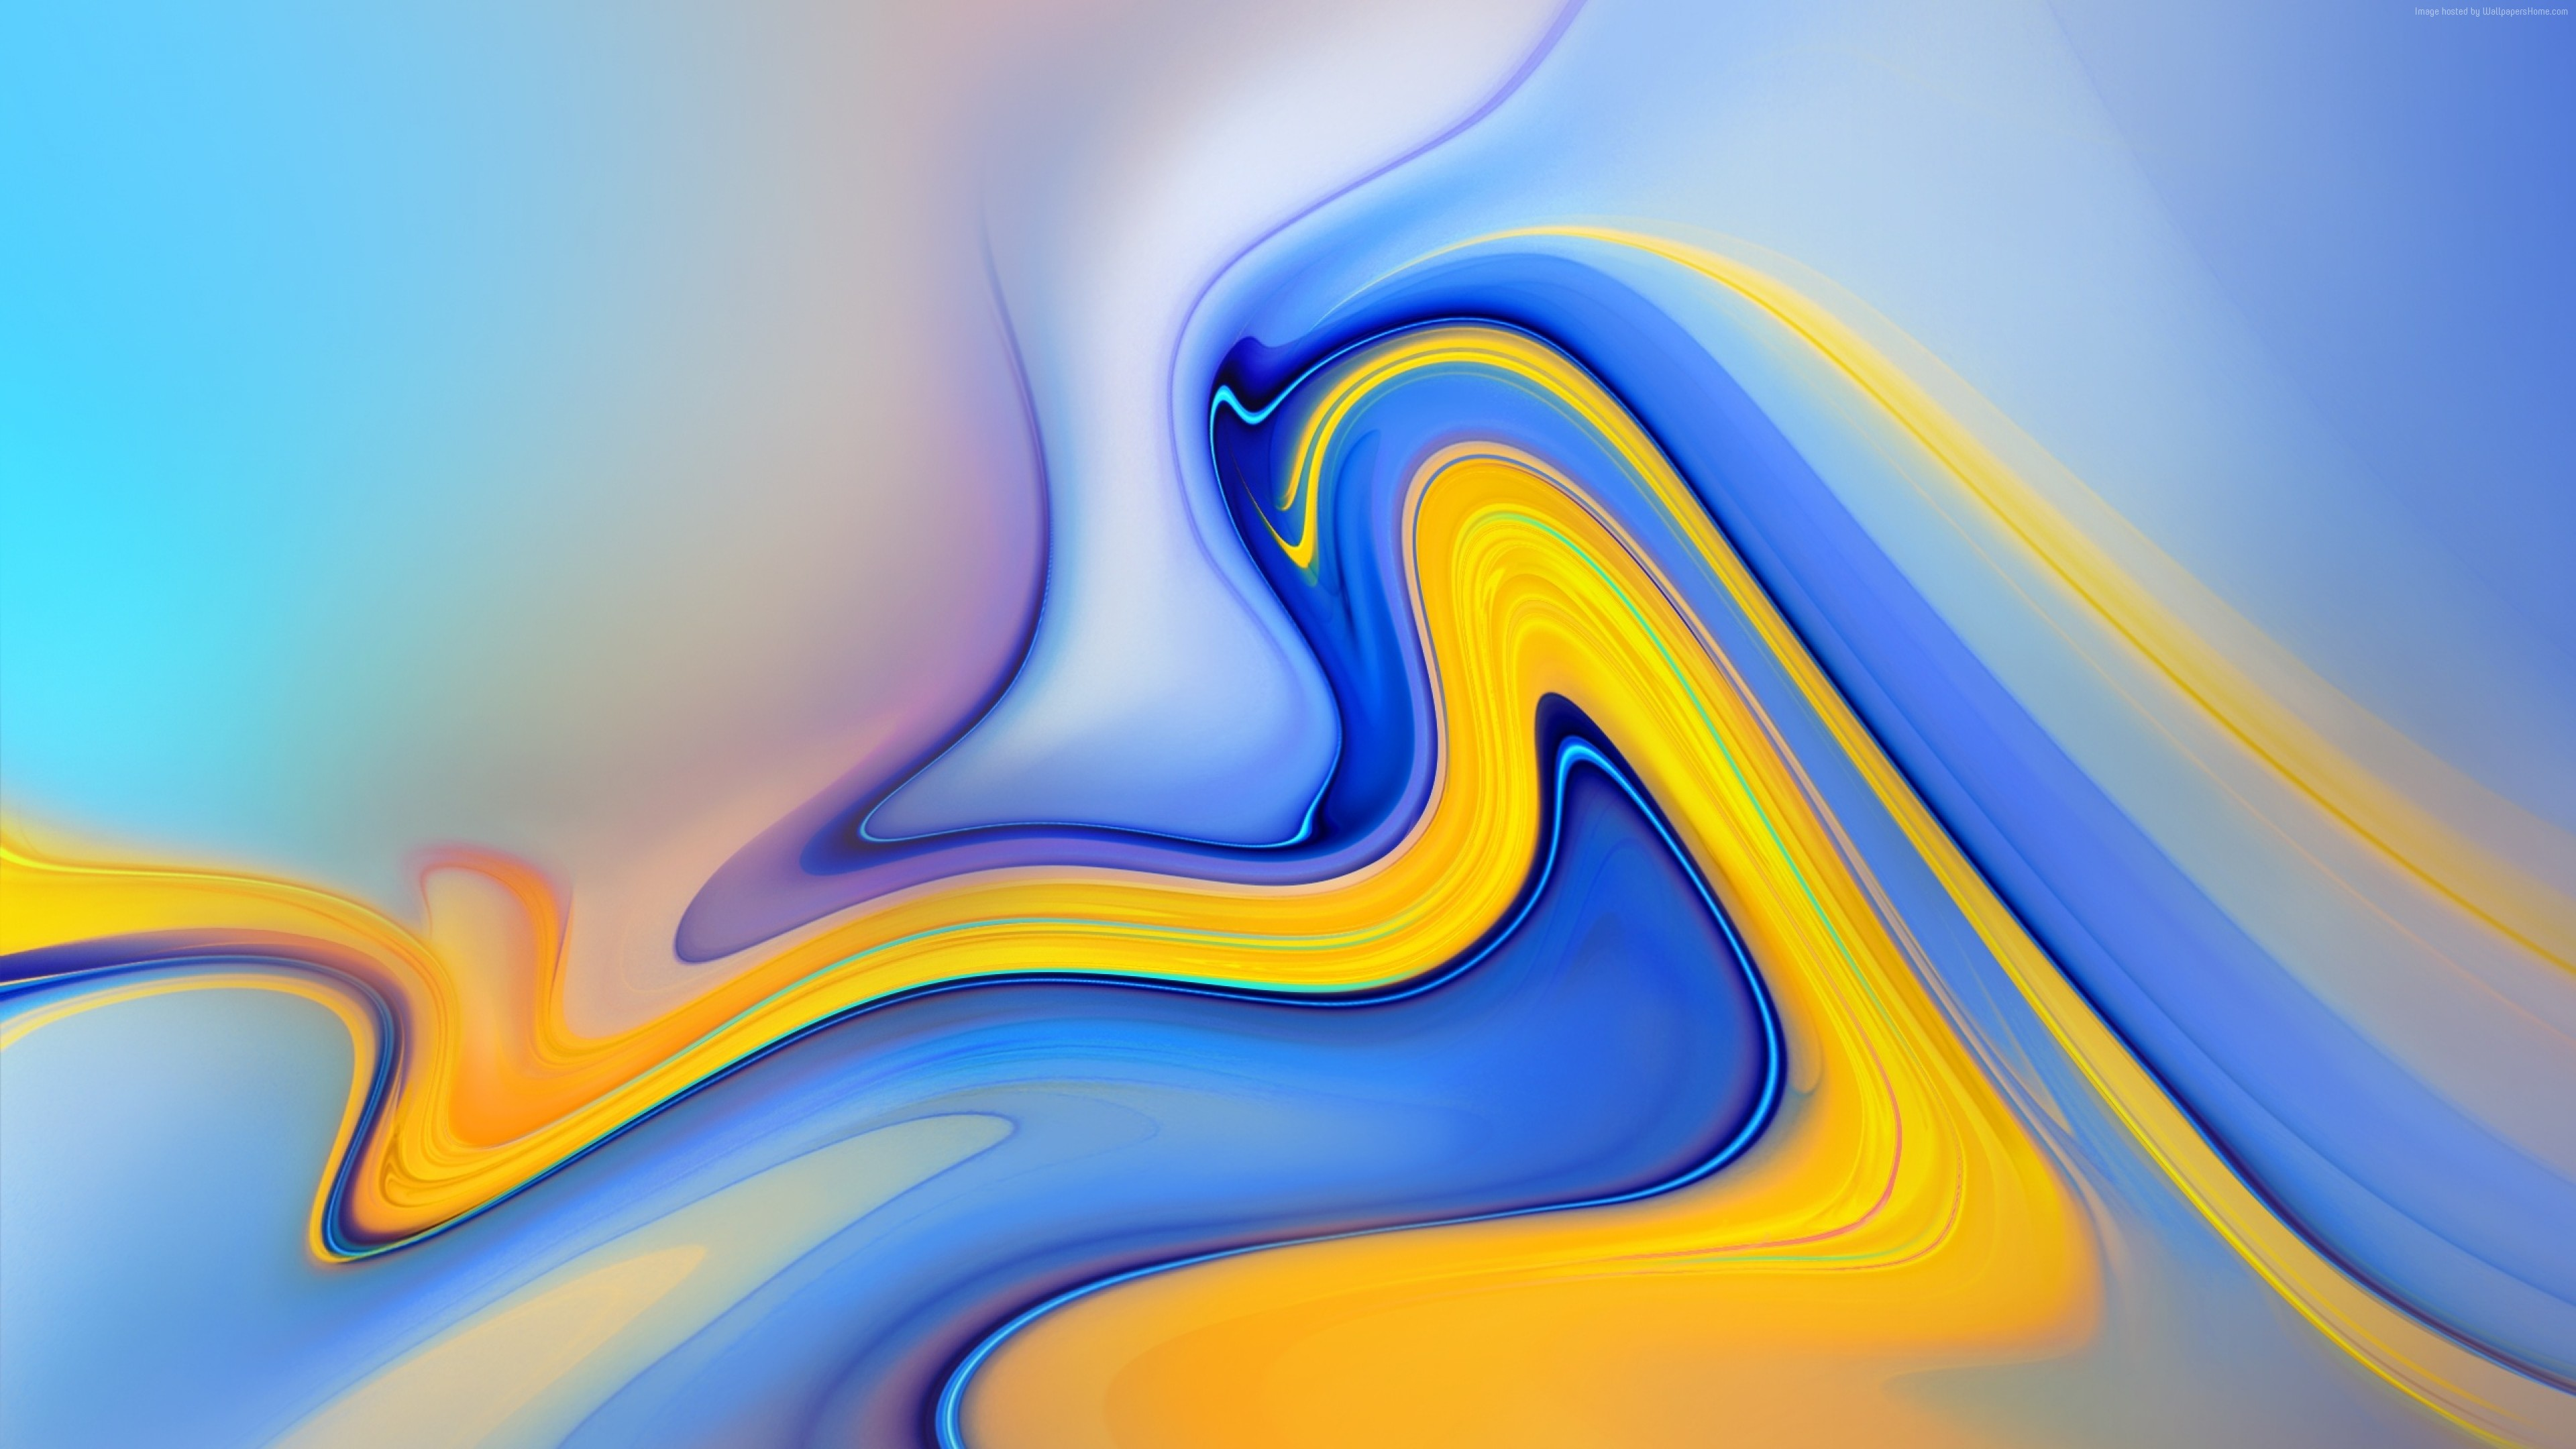 Wallpaper Samsung Galaxy Note 9, Android 8.0, Android Oreo, abstract, colorful, Abstract